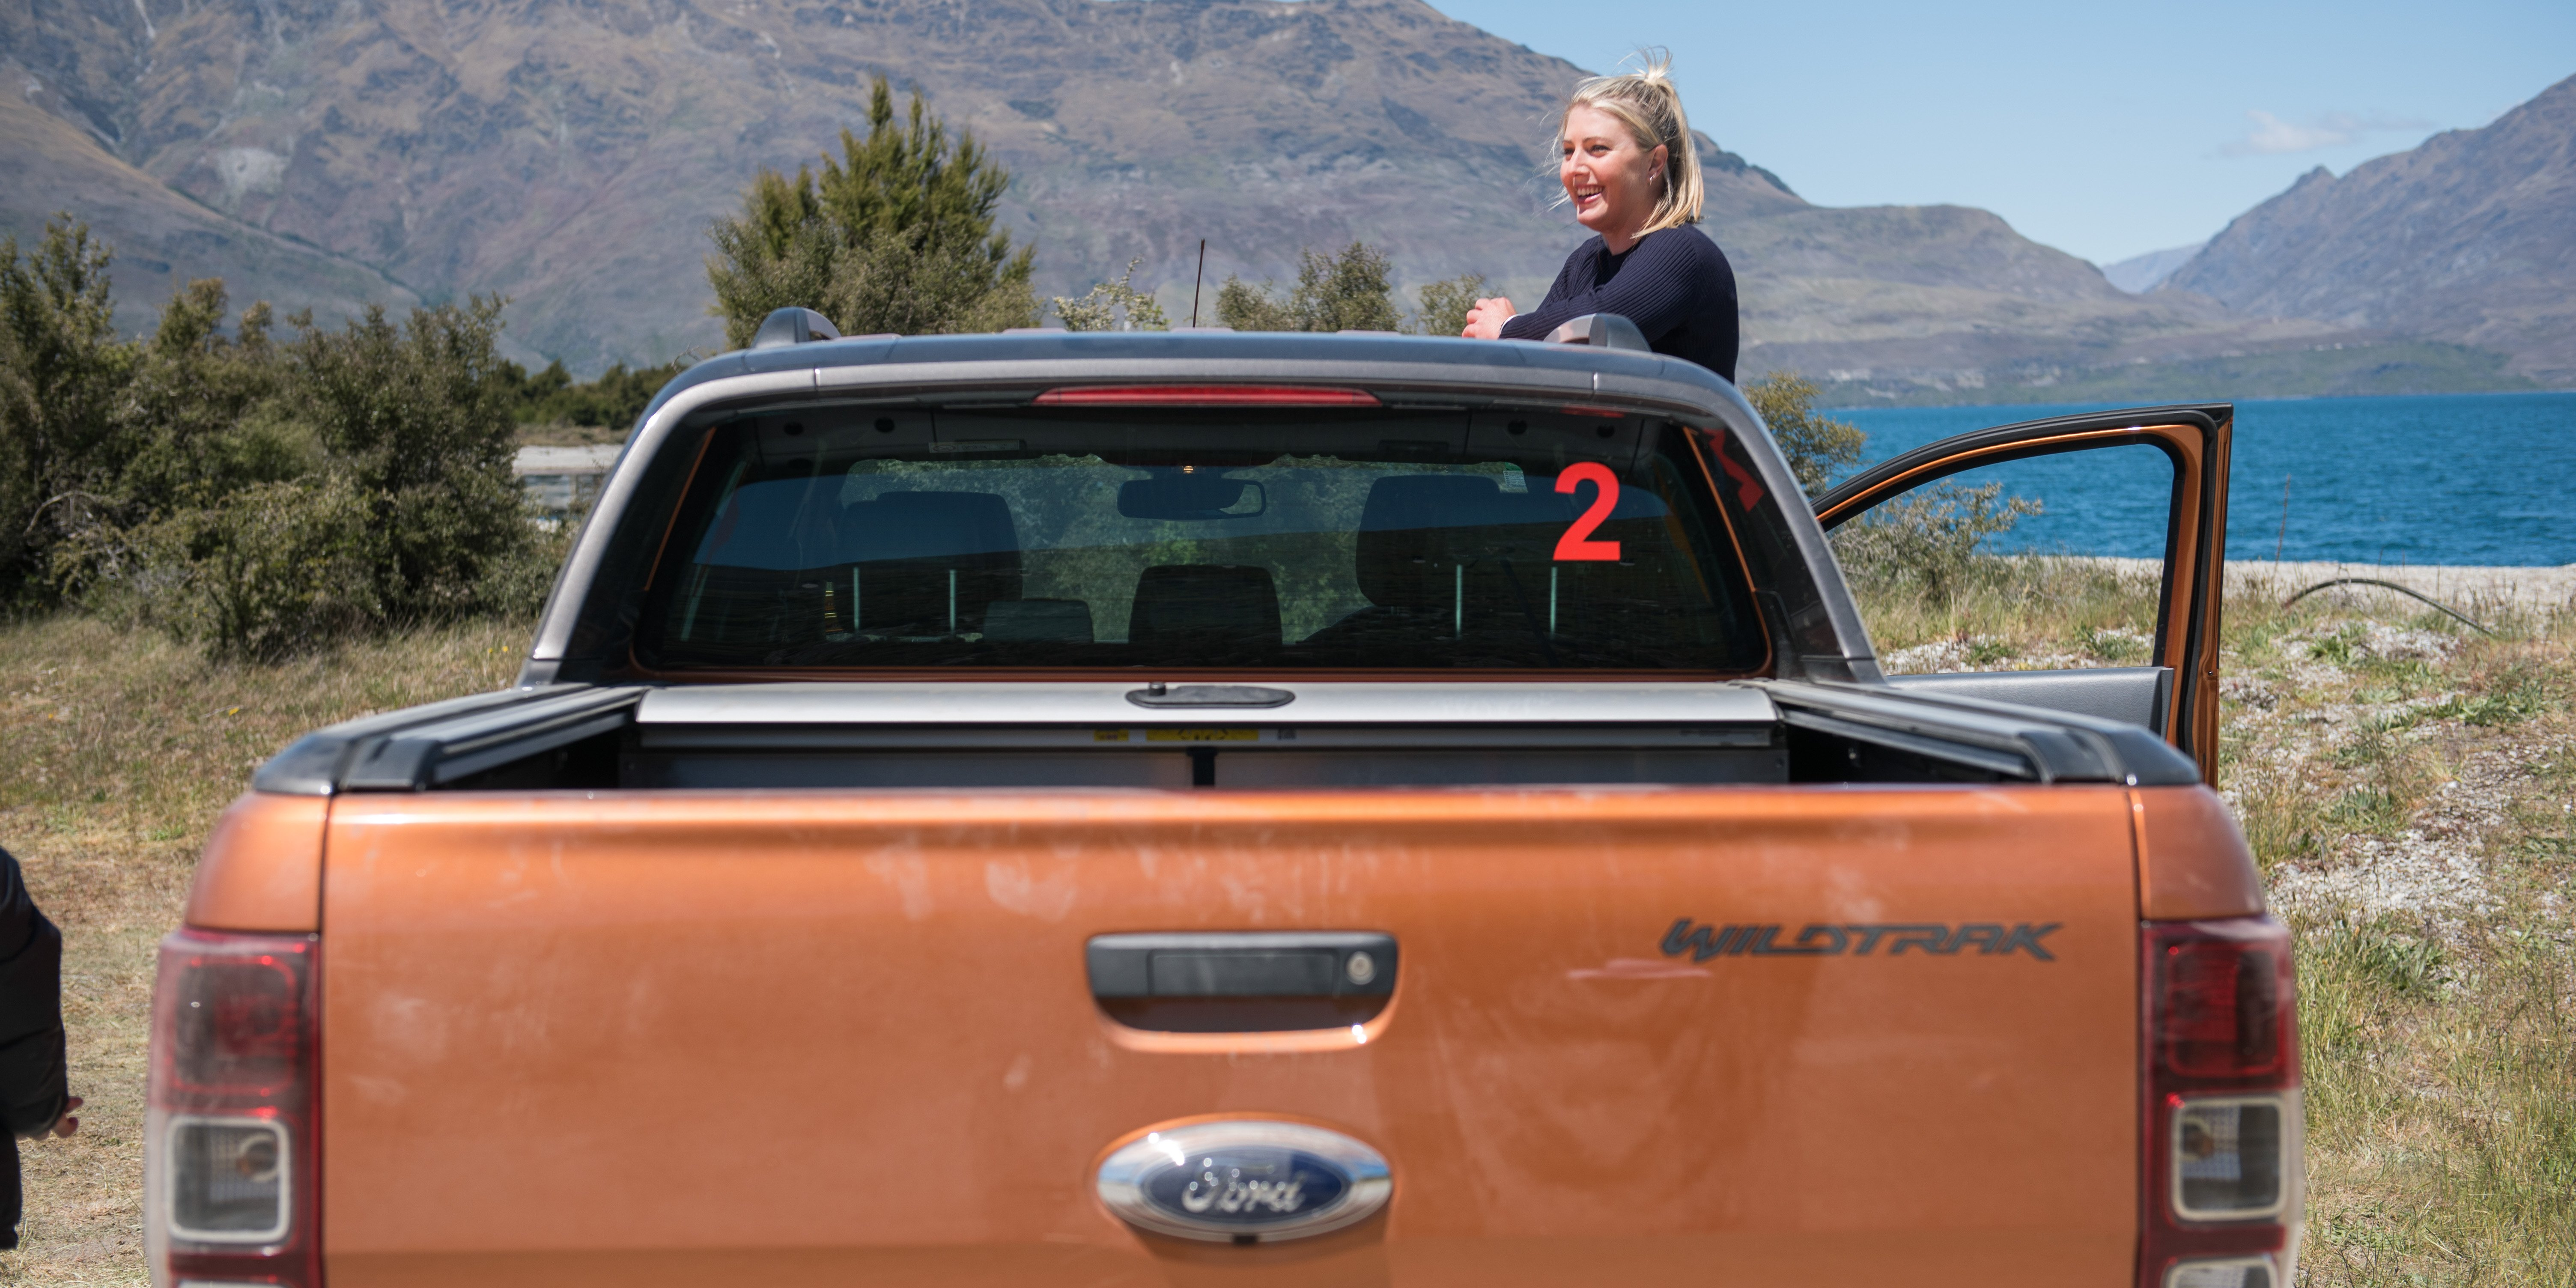 Amazing 2016 Ford Ranger  Lifestyle Adventure In New Zealand